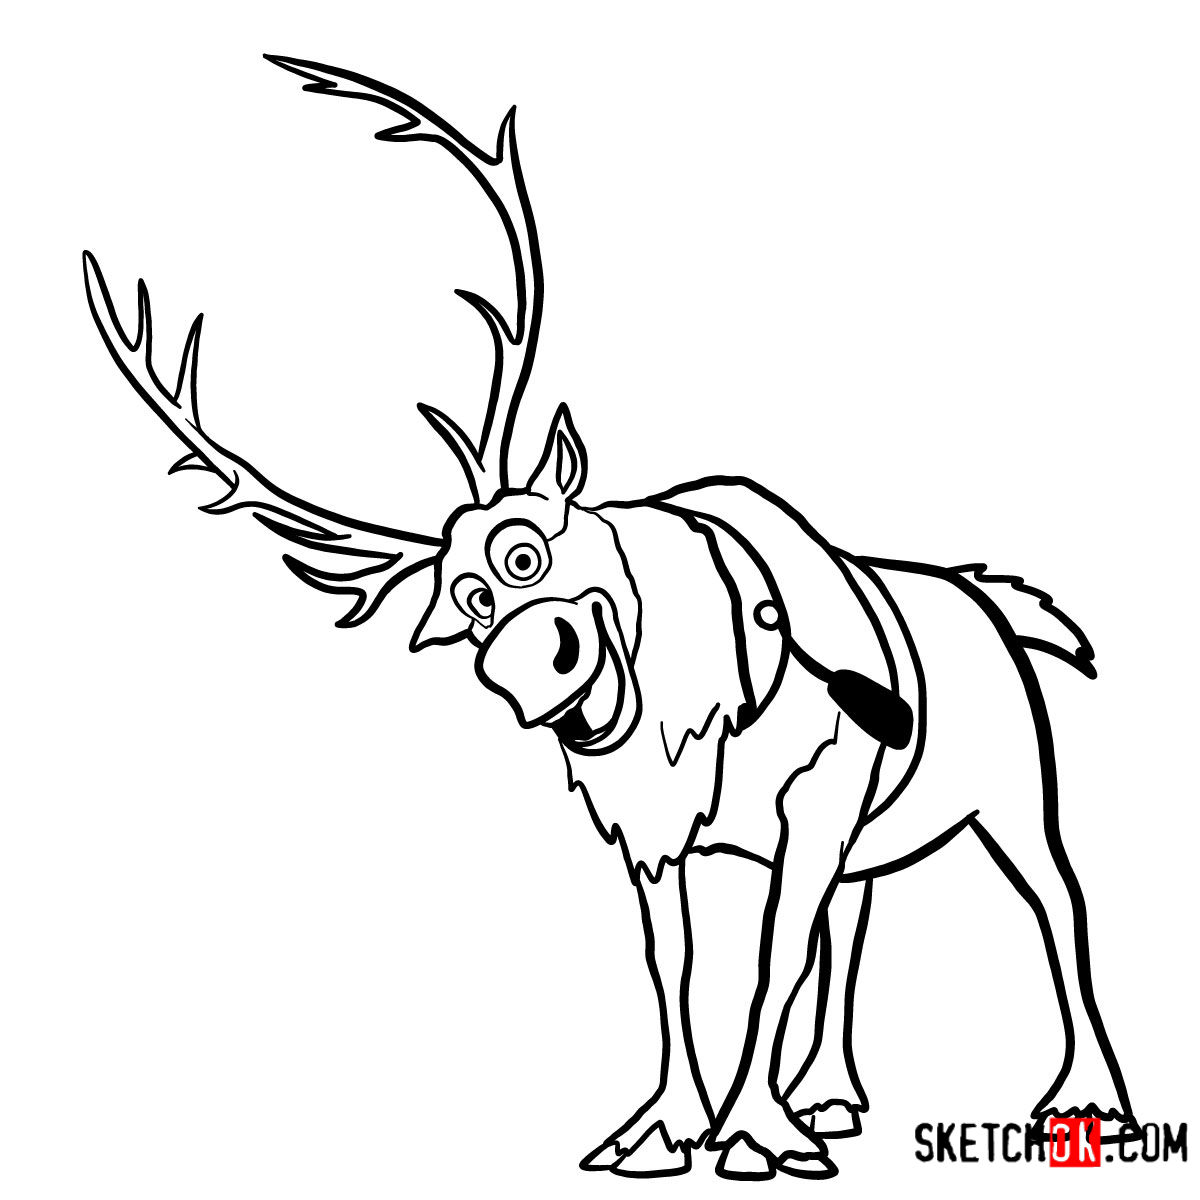 how to draw frozen characters sven from frozen coloring pages lluviaeneldesvan characters how frozen draw to